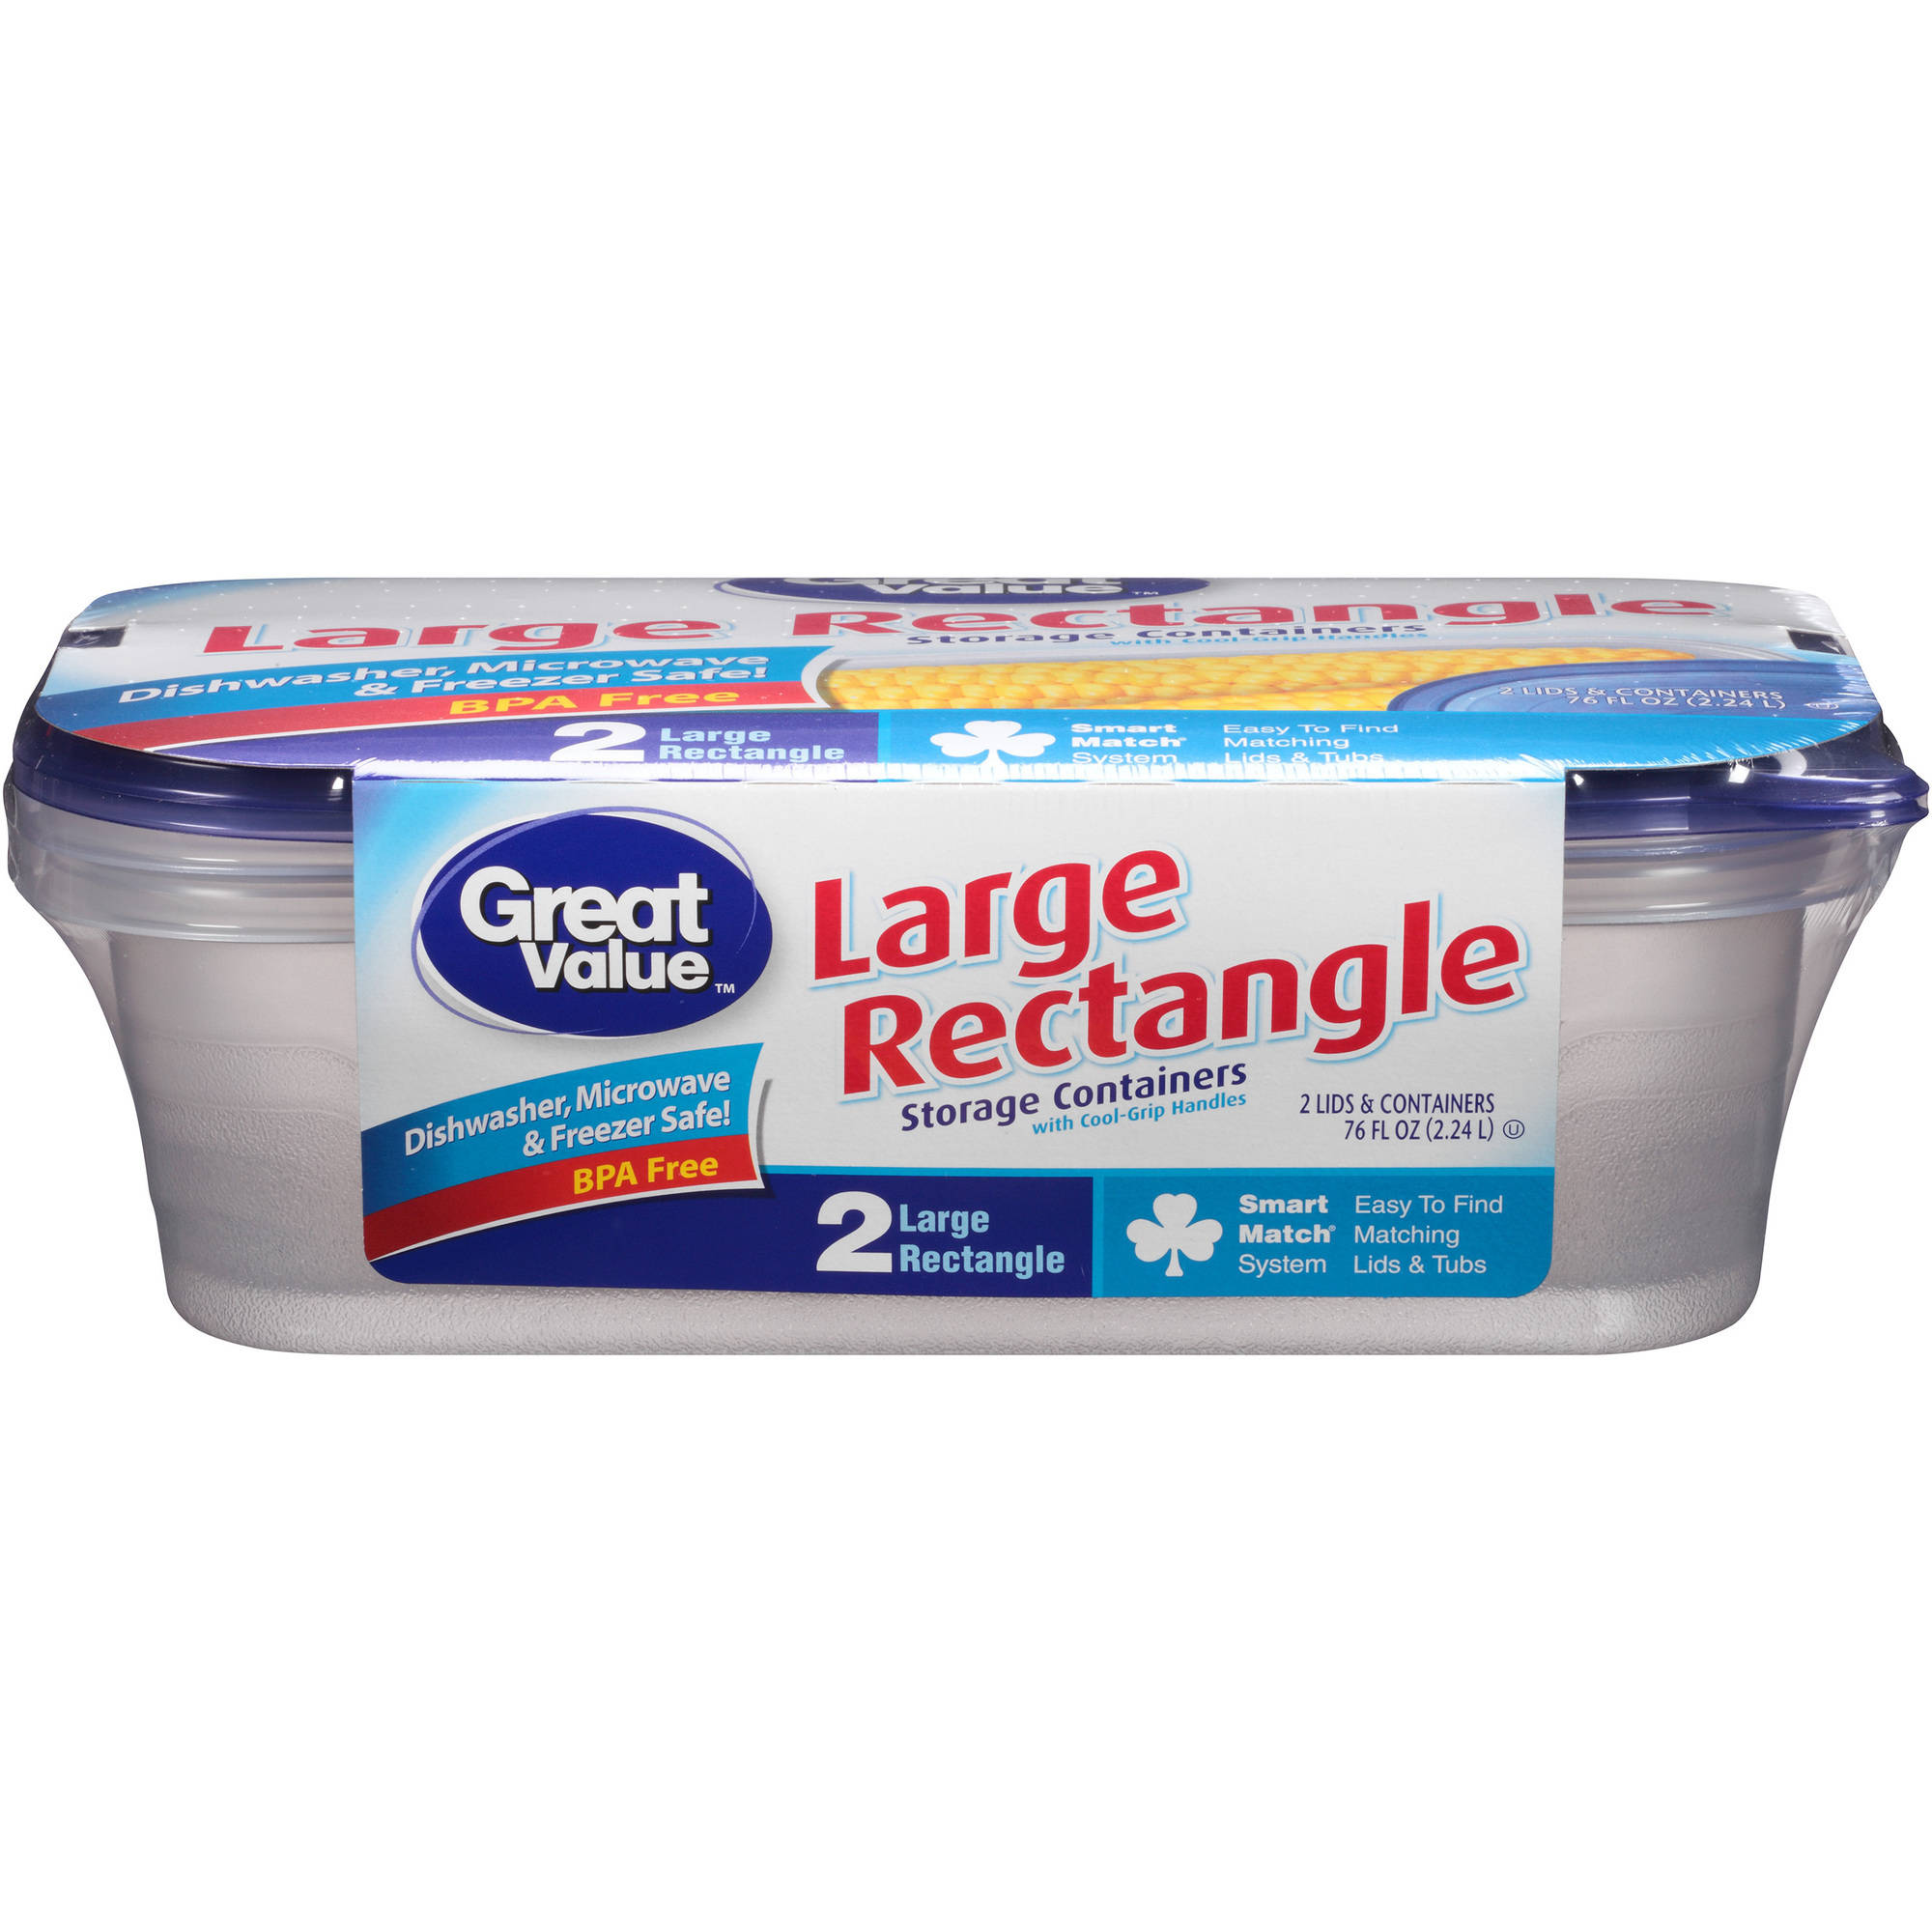 Great Value Large Rectangle Storage Containers, 76 fl oz, 2 count